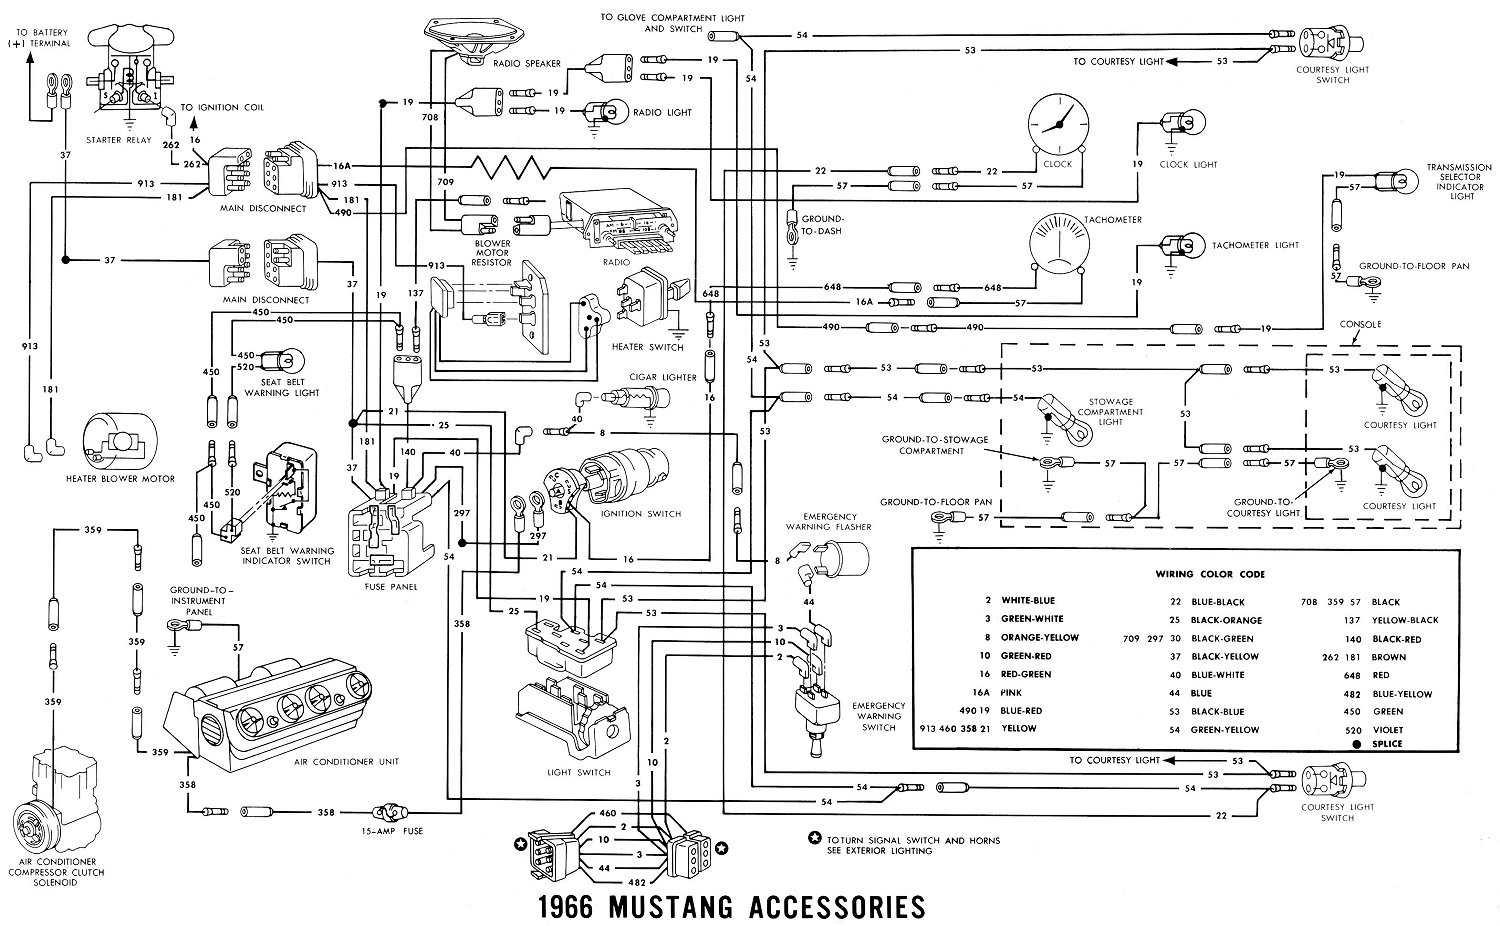 1966 Mustang Wiring Diagrams - Average Joe Restoration - 1966 Mustang Wiring Diagram